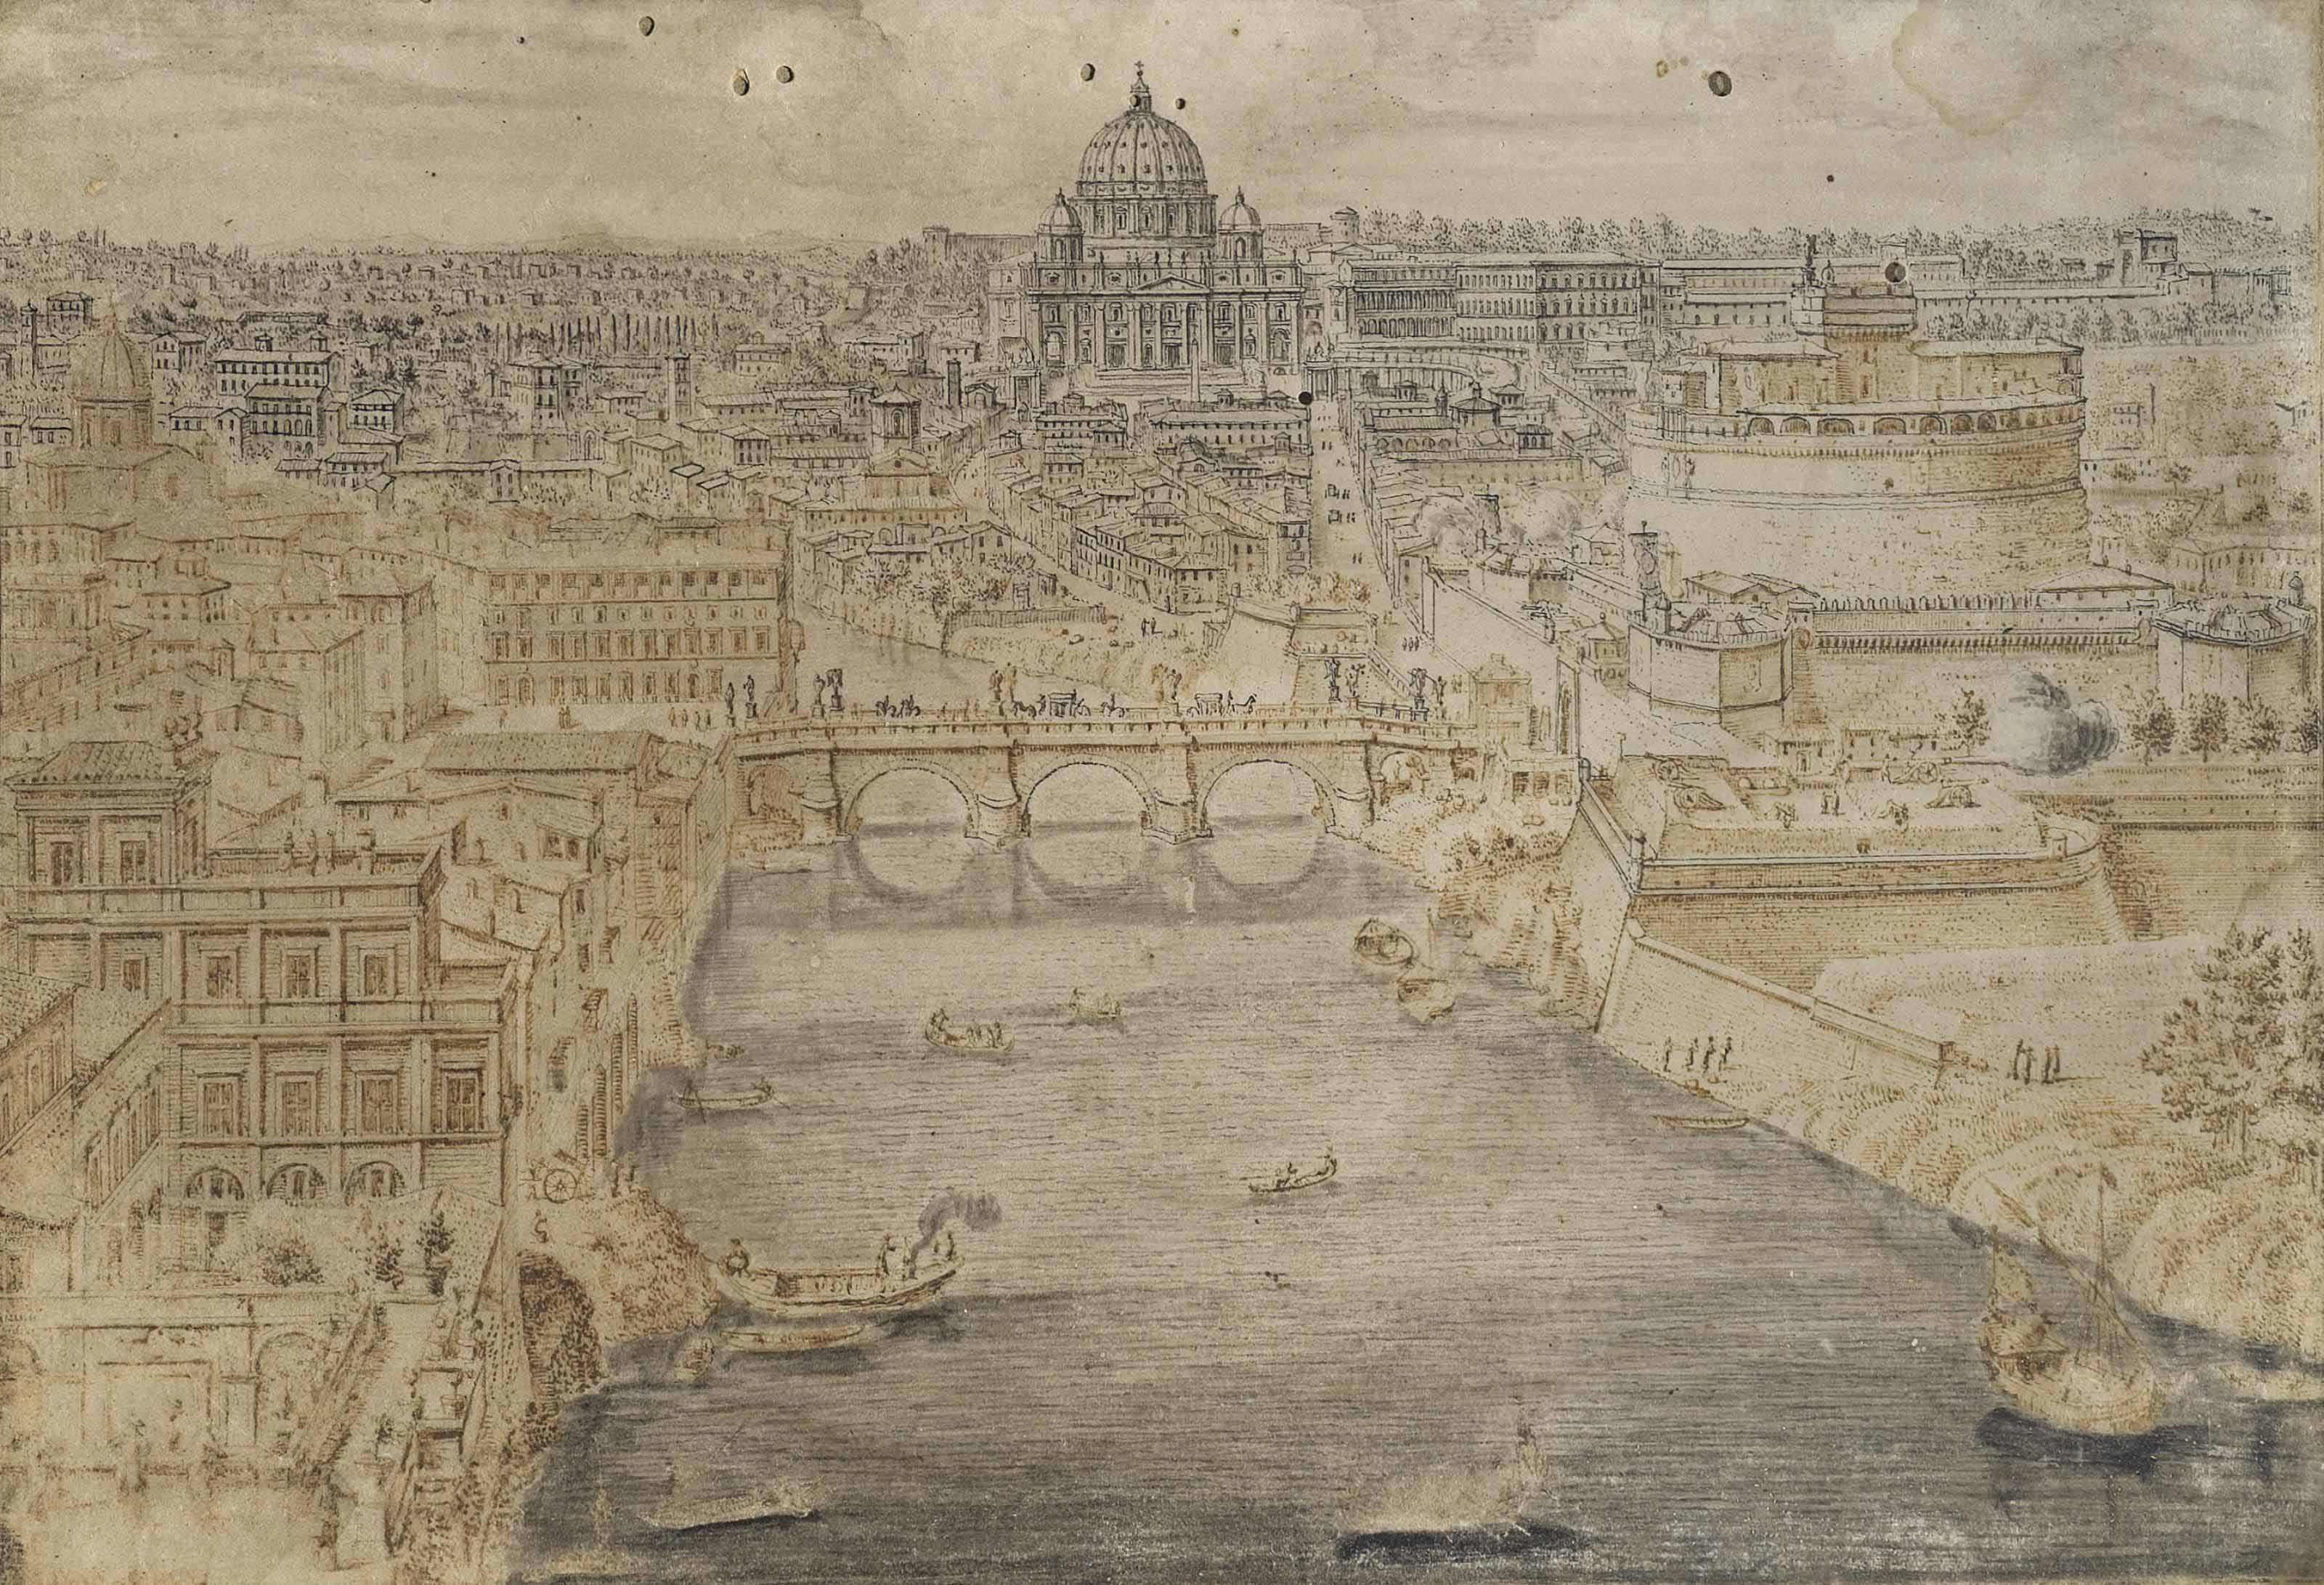 View of Rome with the Ponte Sant' Angelo crossing the Tiber, the Basilica of Saint Peter's in the distance and the Castel Sant' Angelo on the right